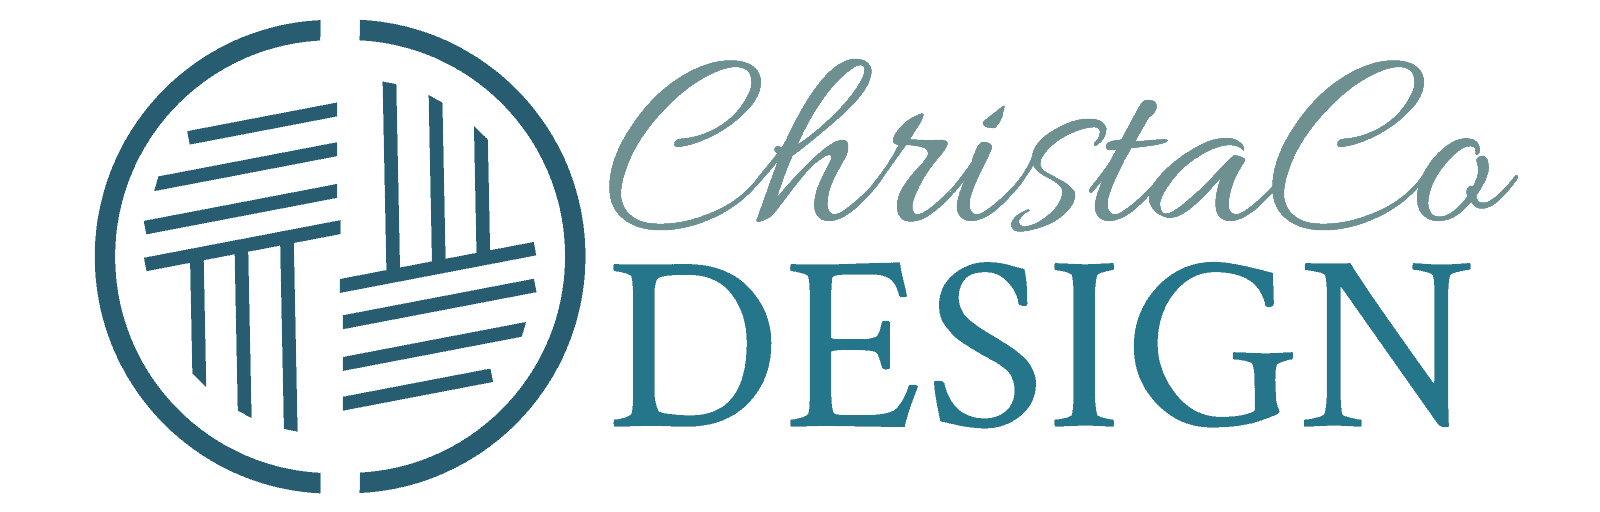 Christa Co Design